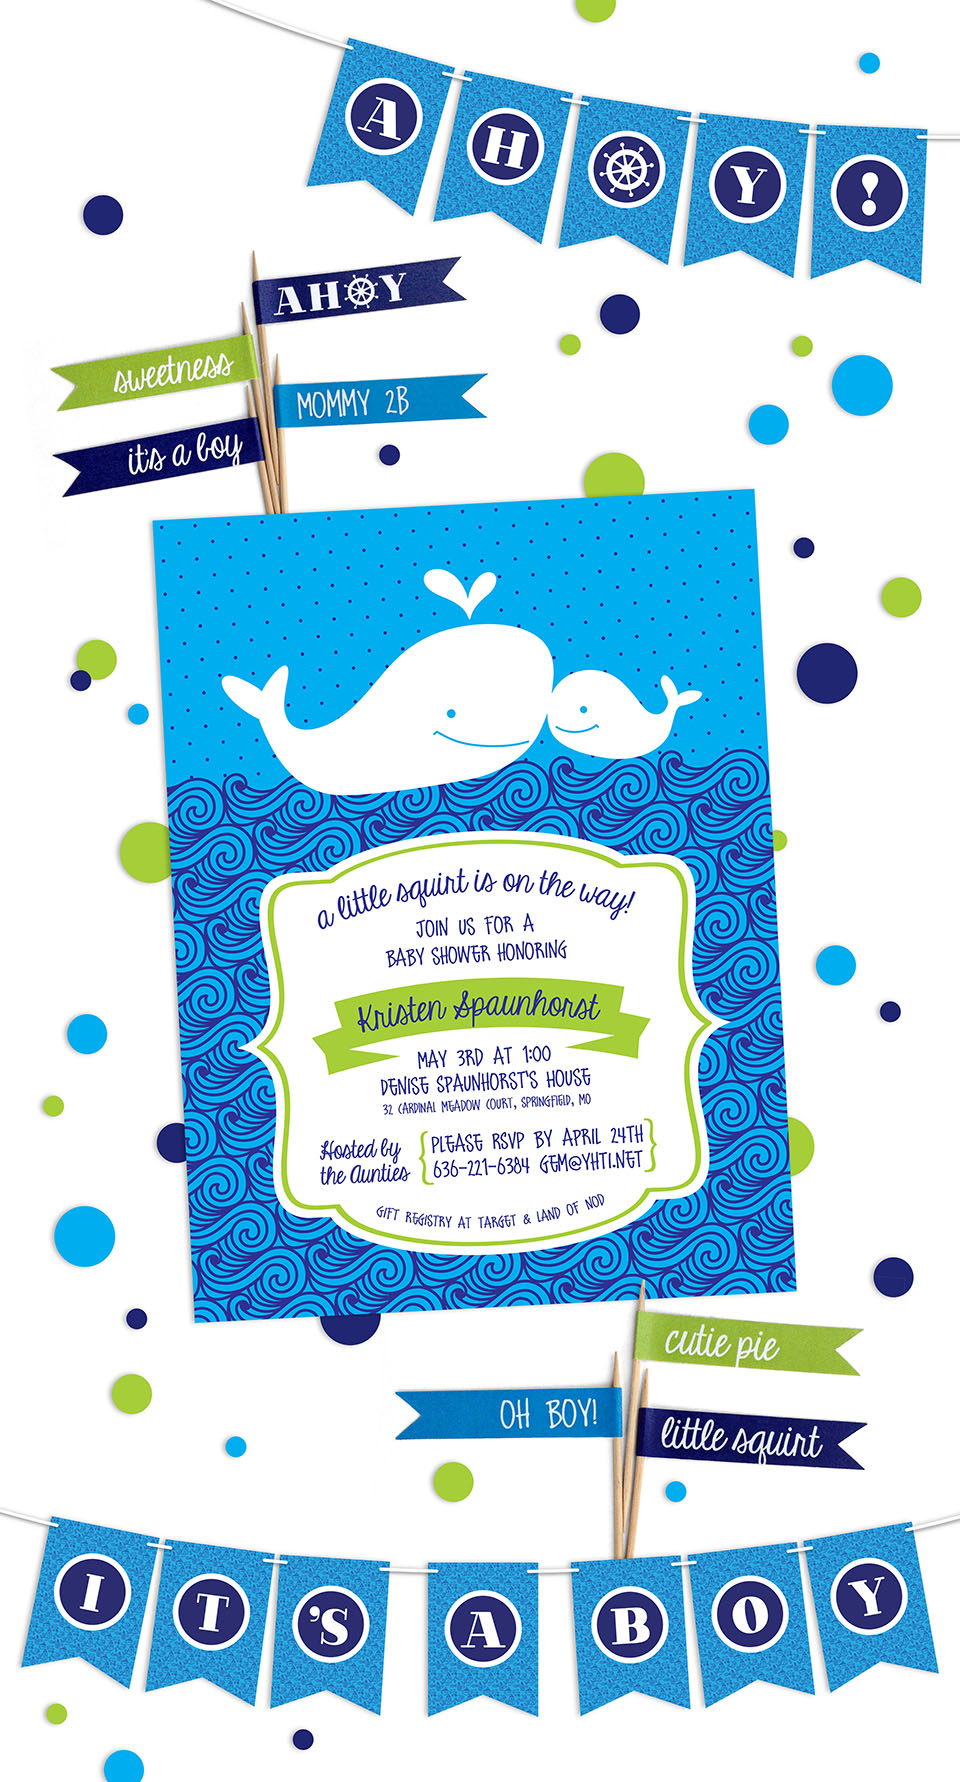 Little Squirt Baby Shower Invite